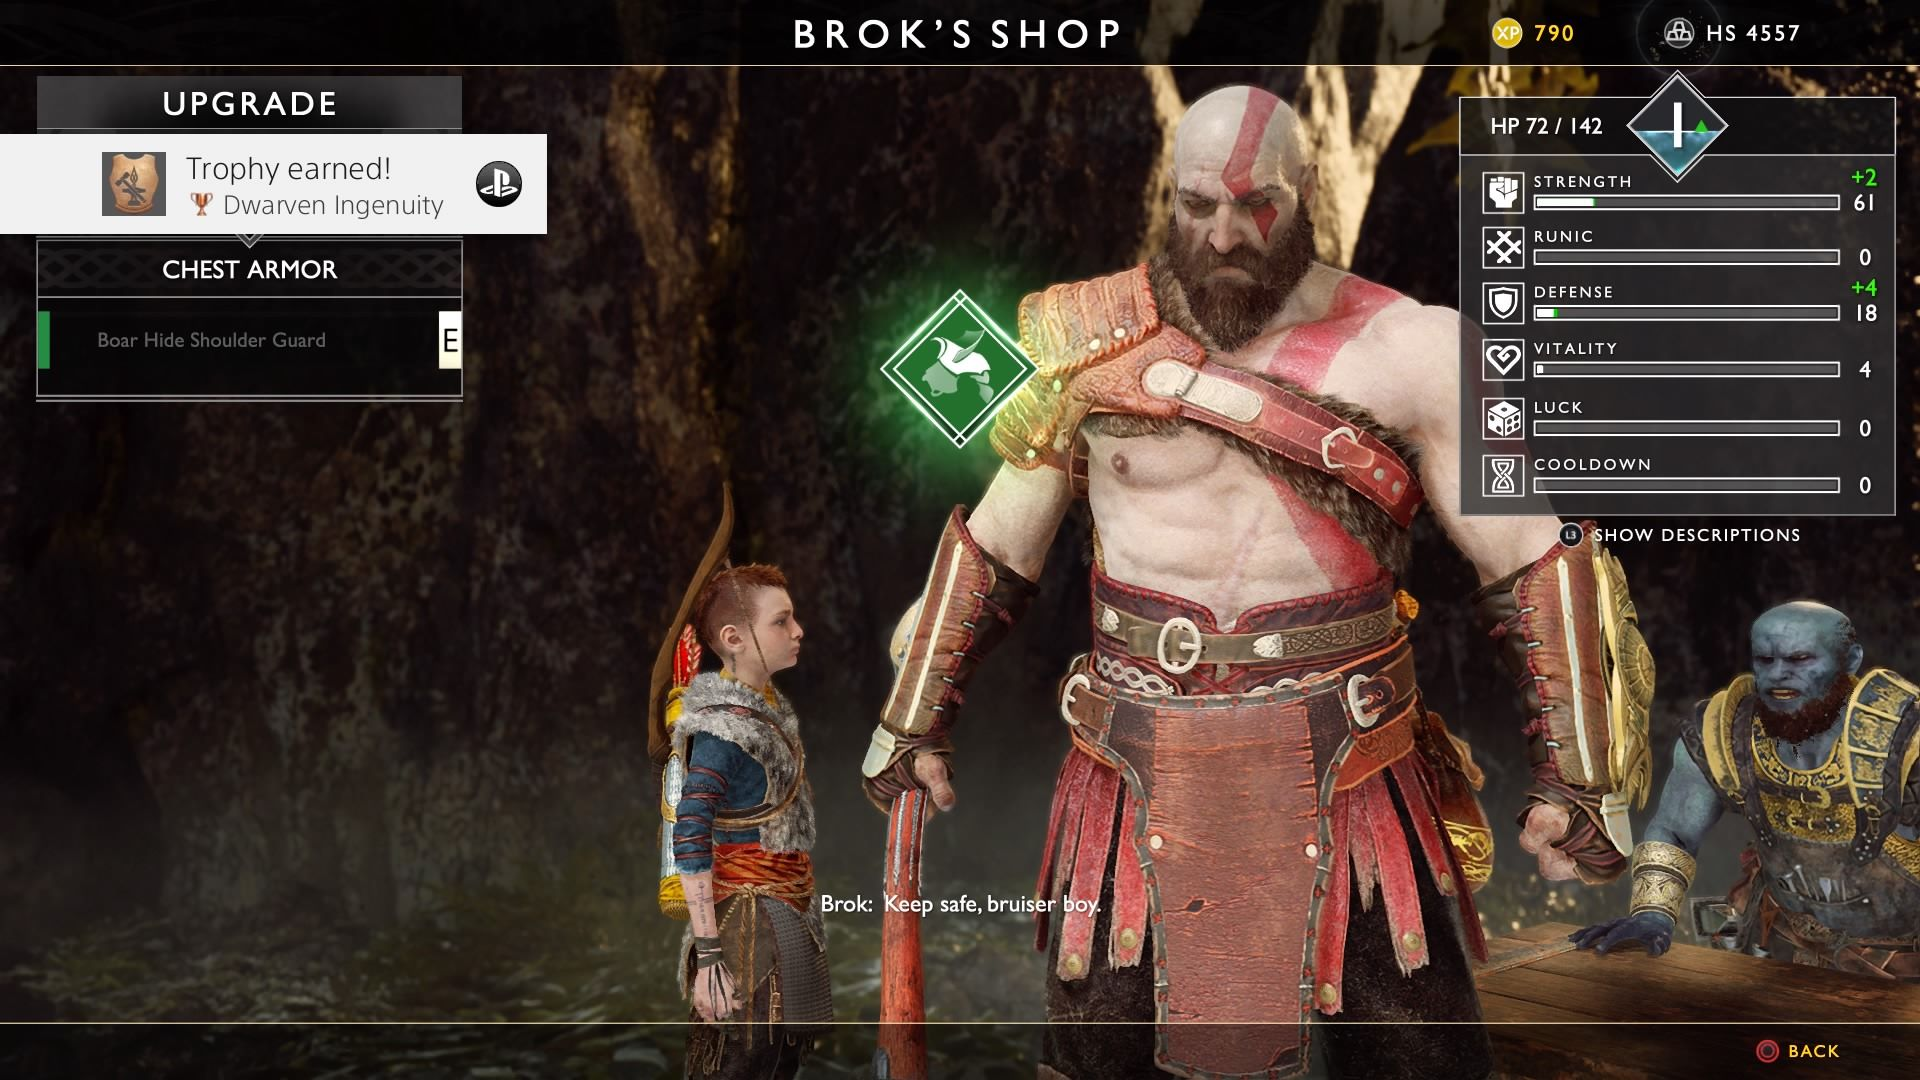 Kratos's stats in God of War (2018): HP/Strength/Runic/Defense/Vitality/Luck/Cooldown